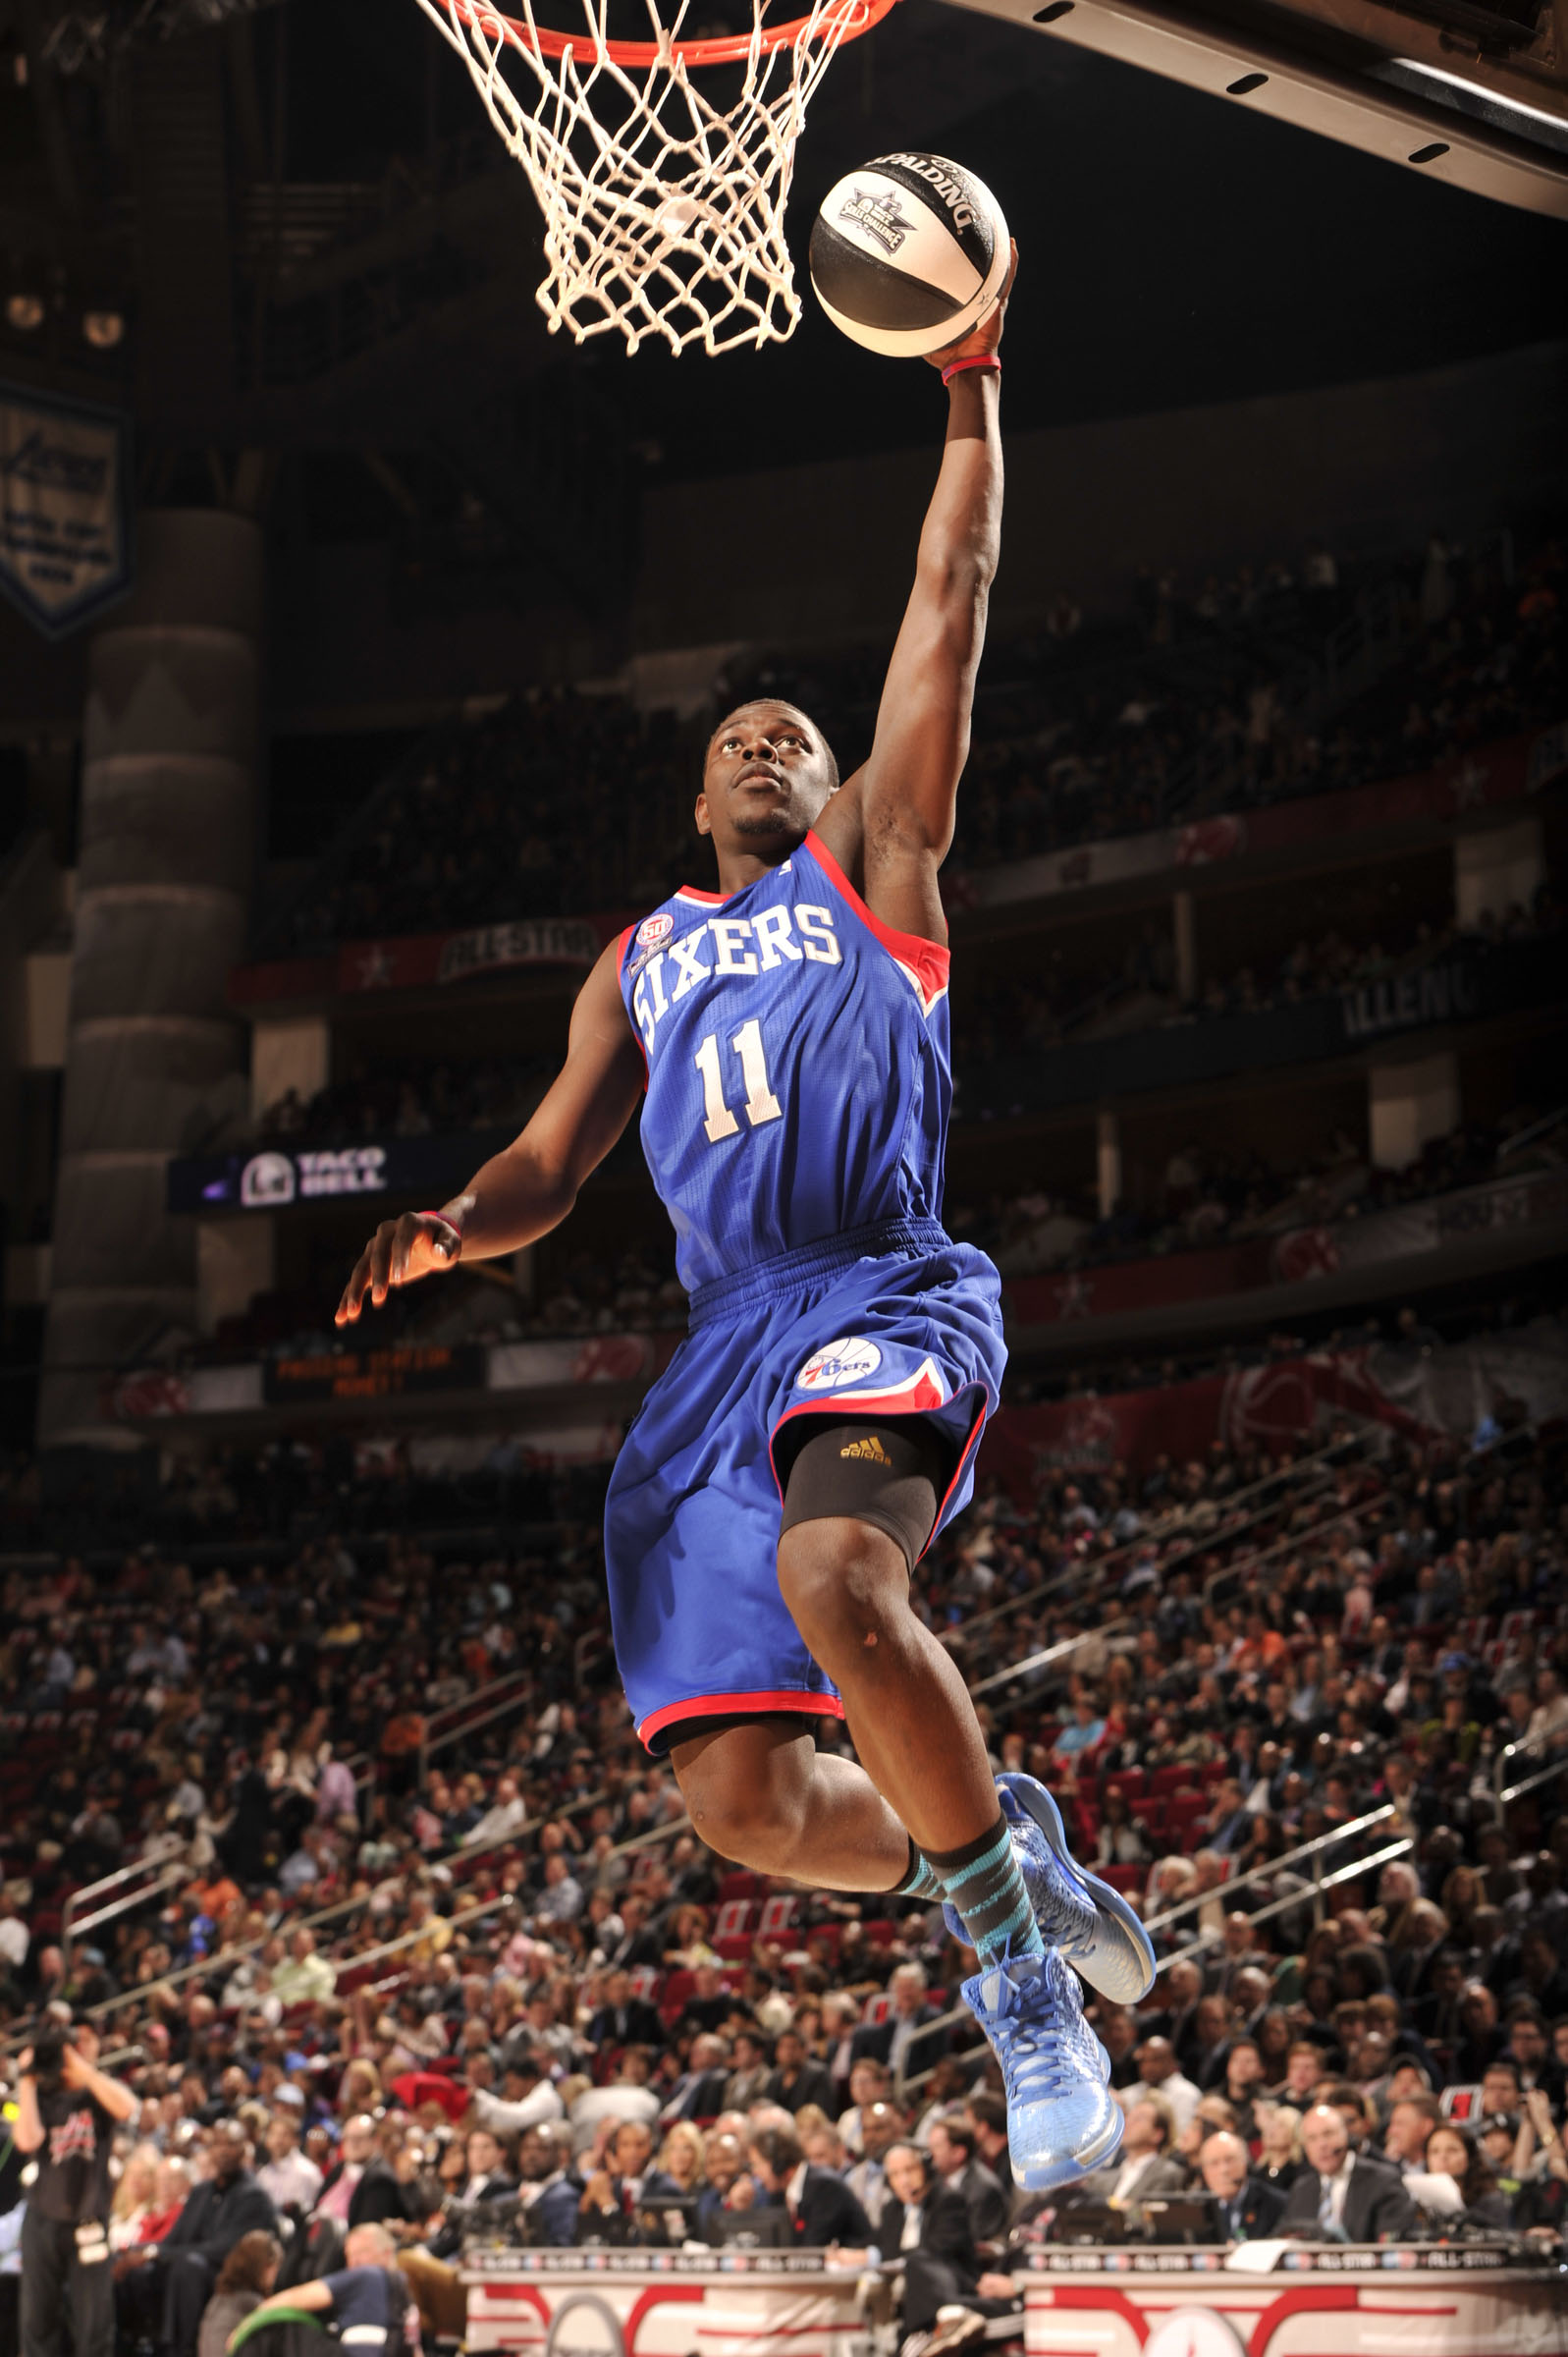 ad0b3ecaef0 Eastern Conference All-Star Jrue Holiday of the Philadelphia 76ers makes a  layup in his